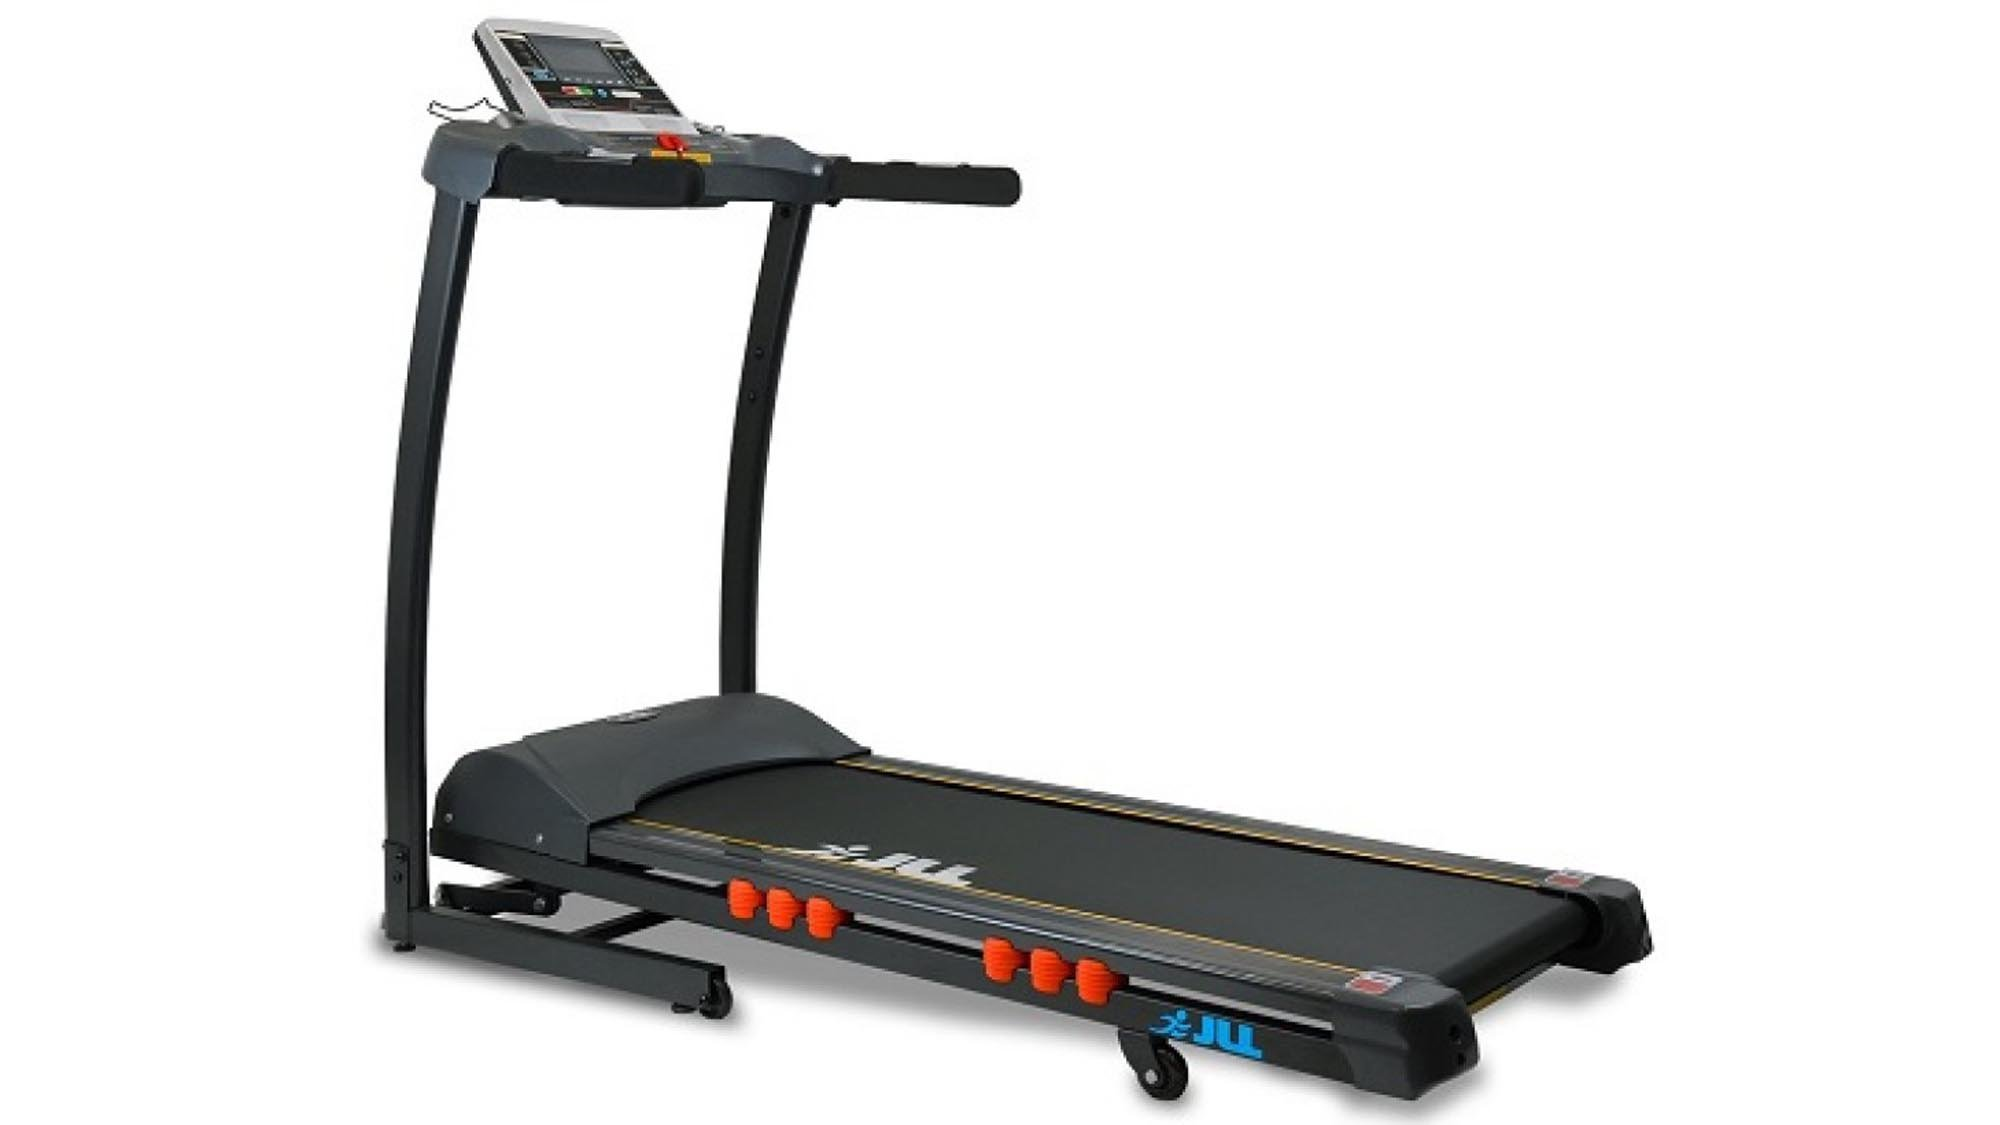 cb0567bf3f2 If you re looking for a cheap treadmill that packs plenty of features into  a frame that won t take up too much space